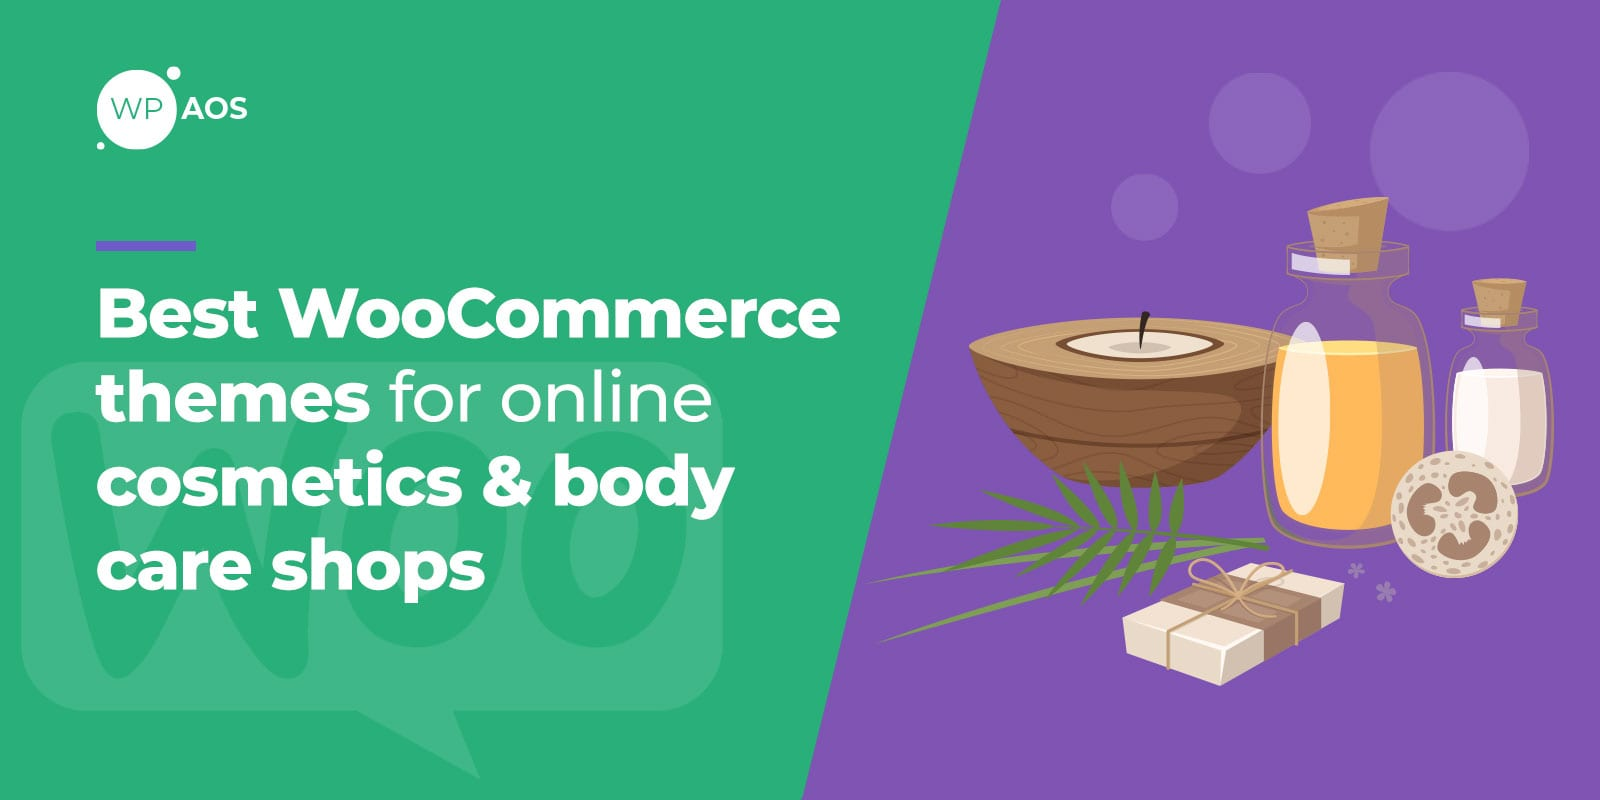 Best WooCommerce Themes for Online Cosmetics Body Care Shops, WooCommerce Maintenance, wpaos